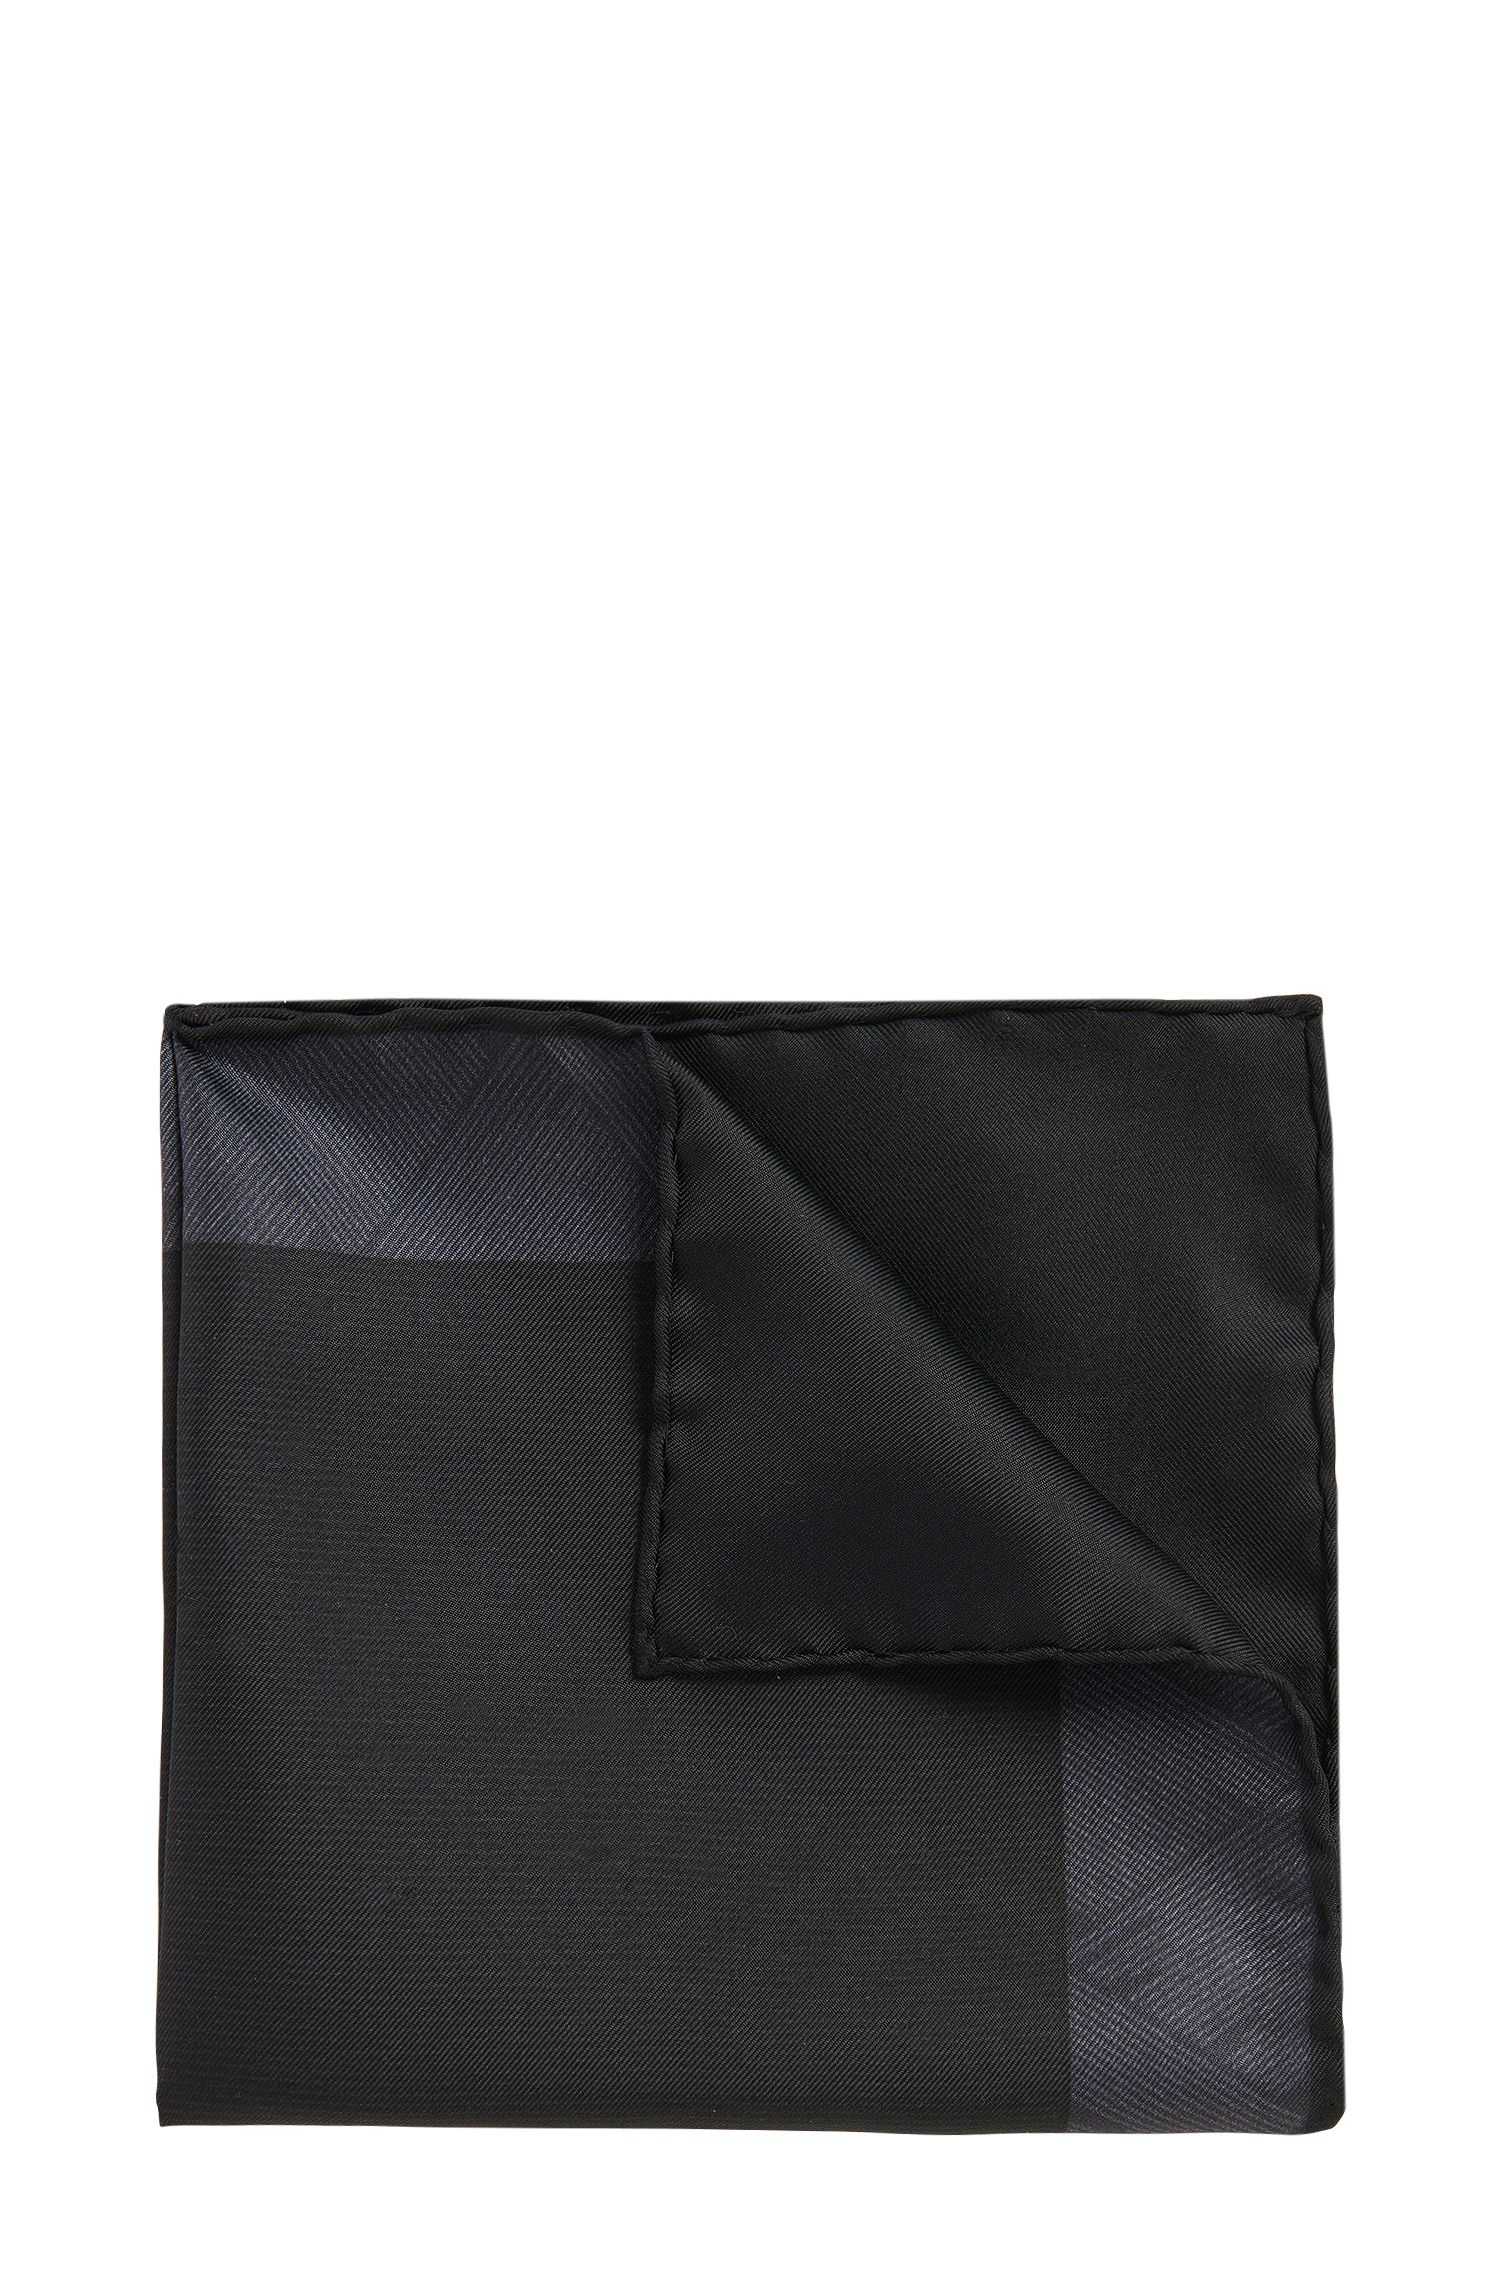 Dezent gemustertes Tailored Einstecktuch aus Seide: 'T-Pocket sq. cm33x33'